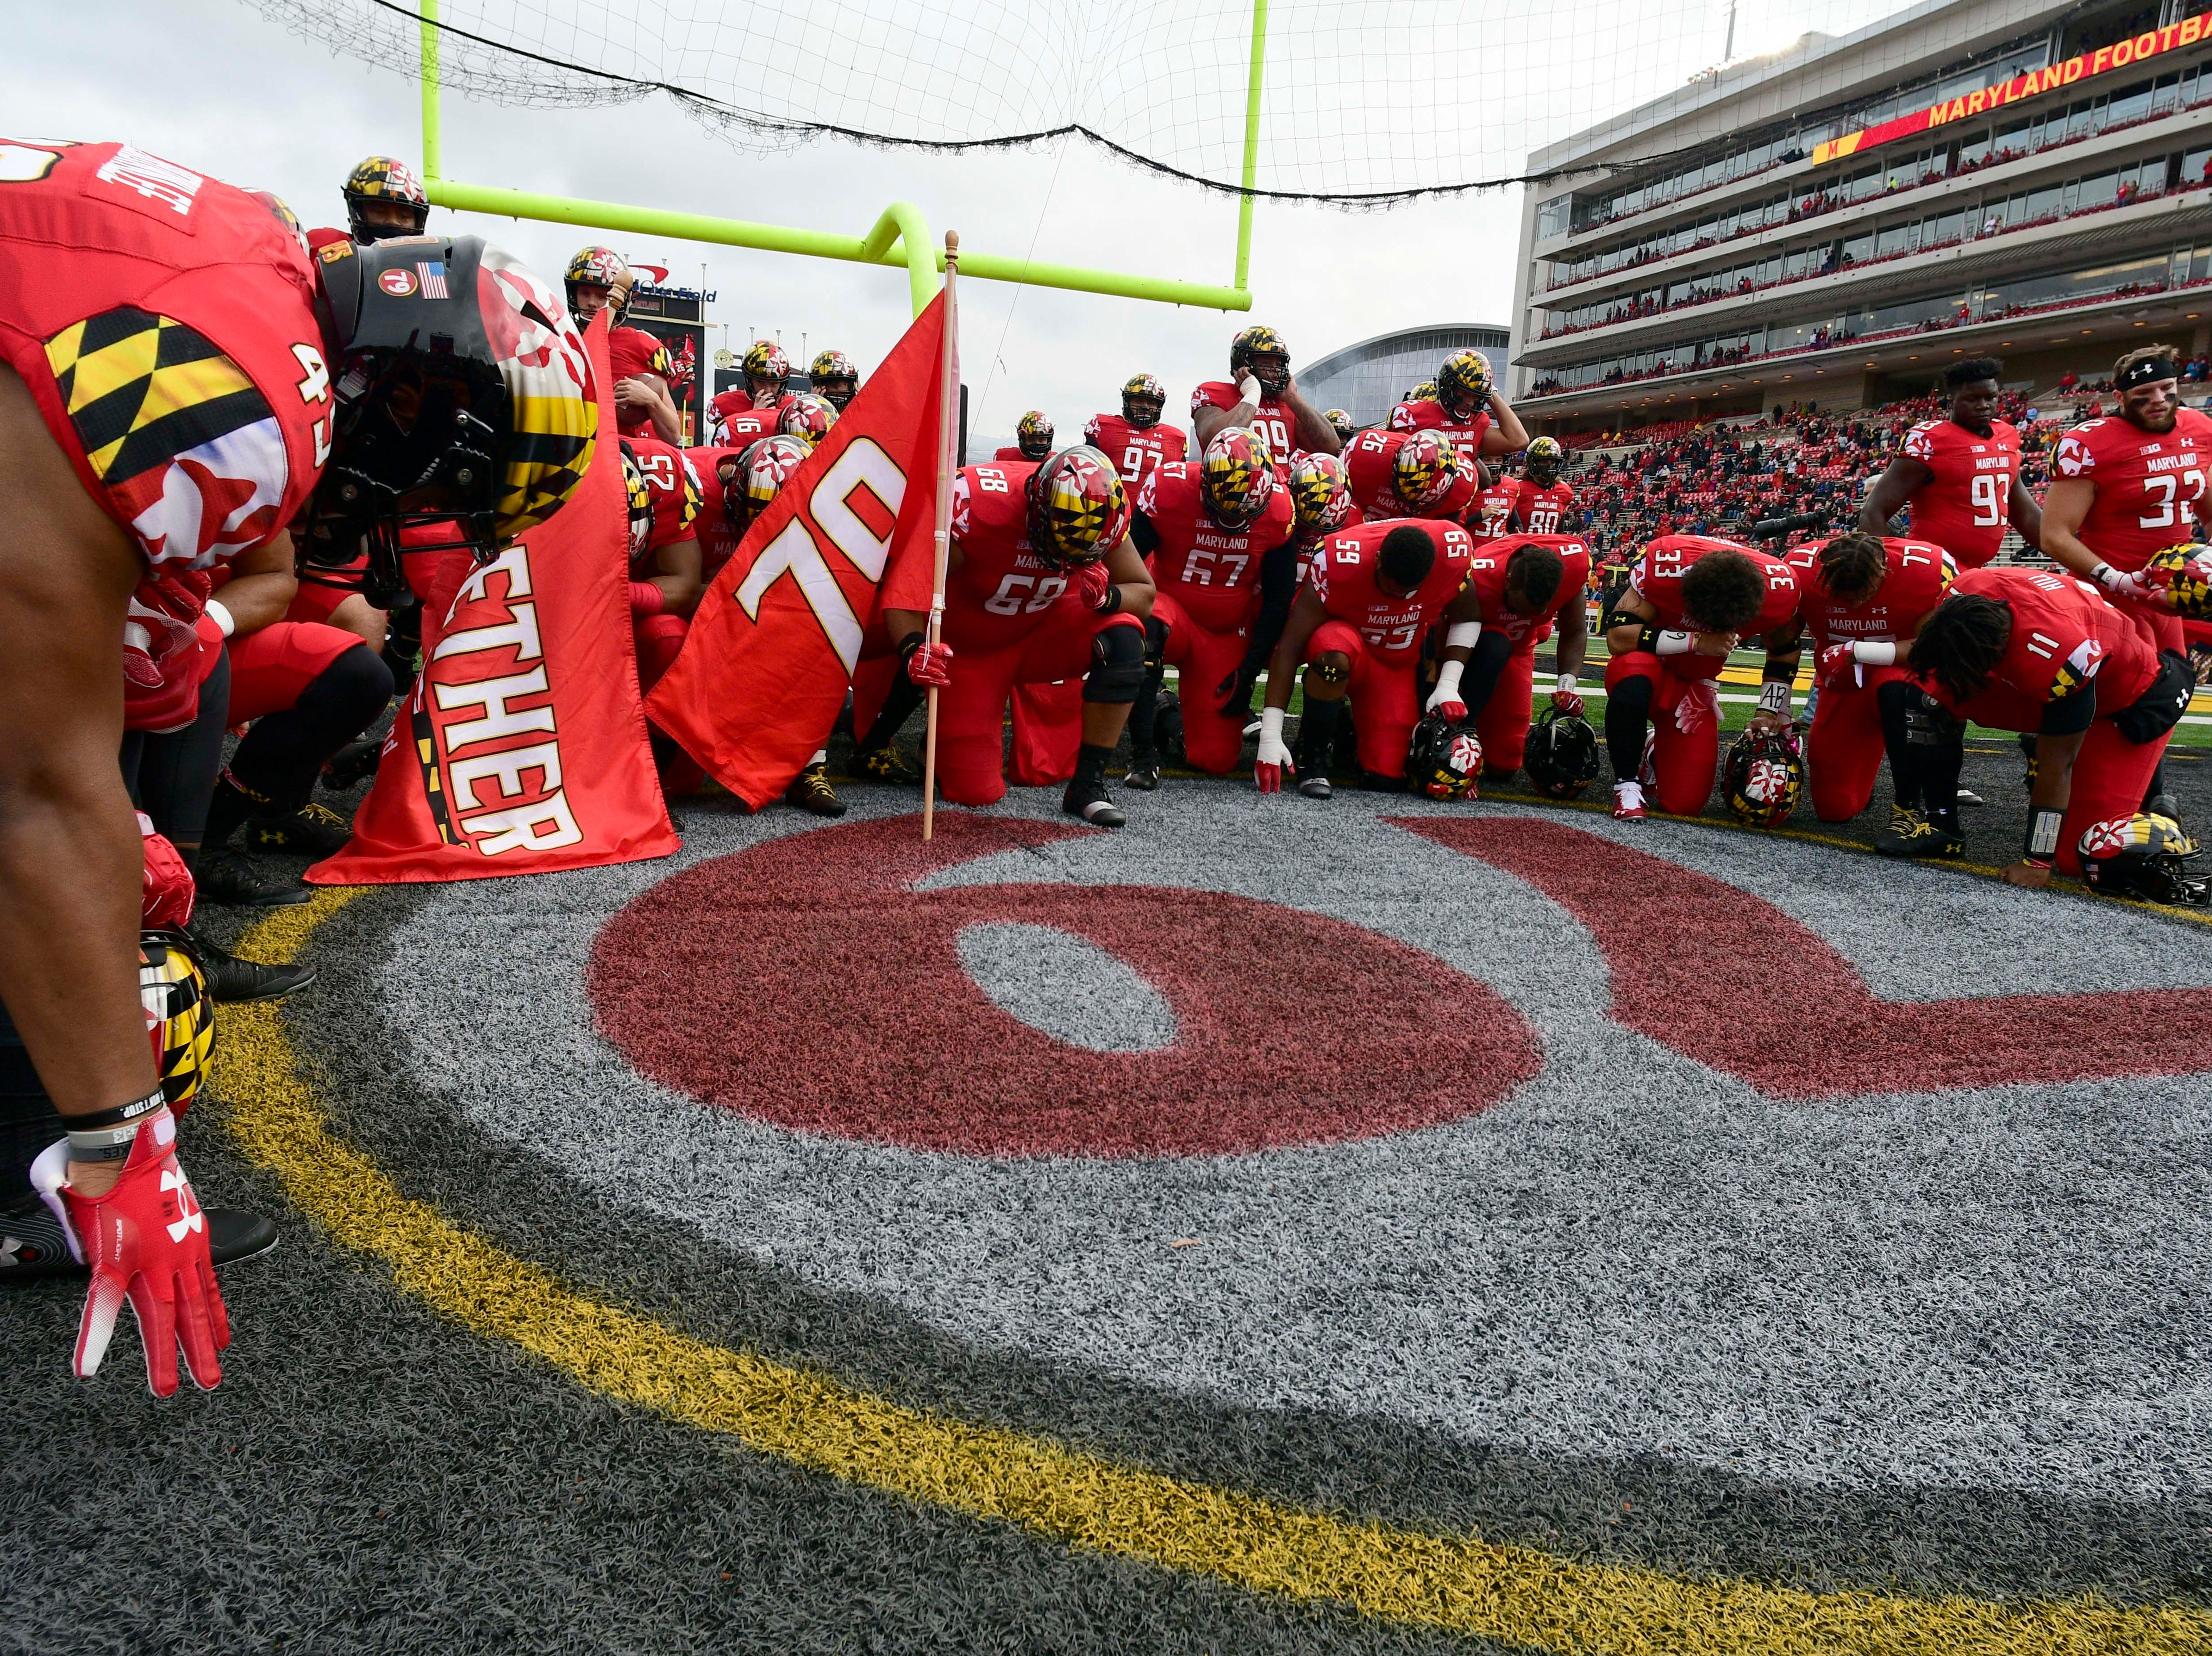 Oct. 27: Maryland Terrapins players take a knee in front of late teammate Jordan McNair's number before the game against the Illinois Fighting Illini at Capital One Field at Maryland Stadium.